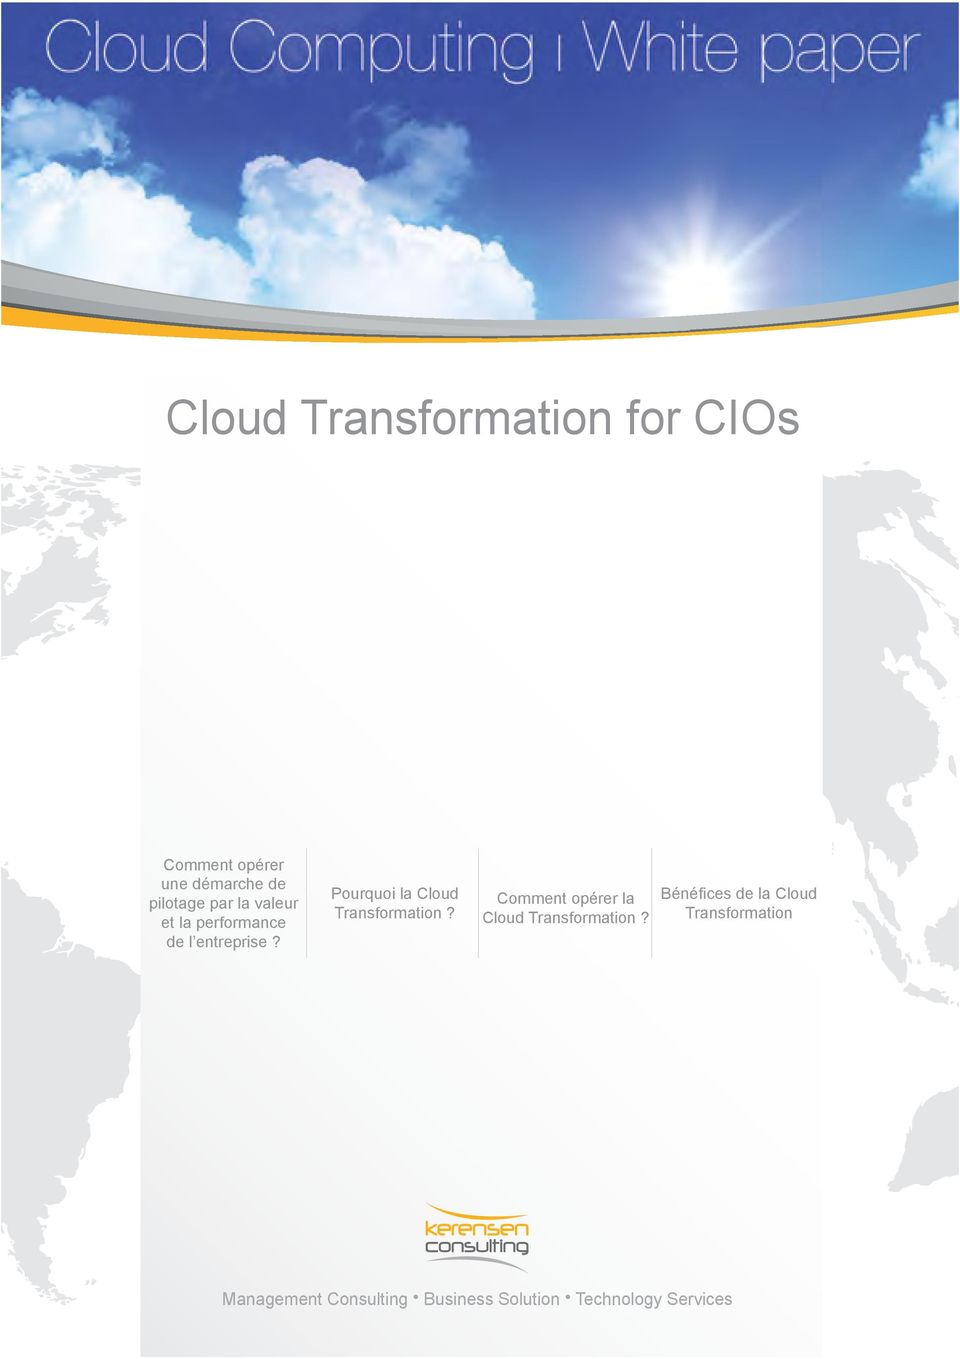 Pourquoi la Cloud Transformation?